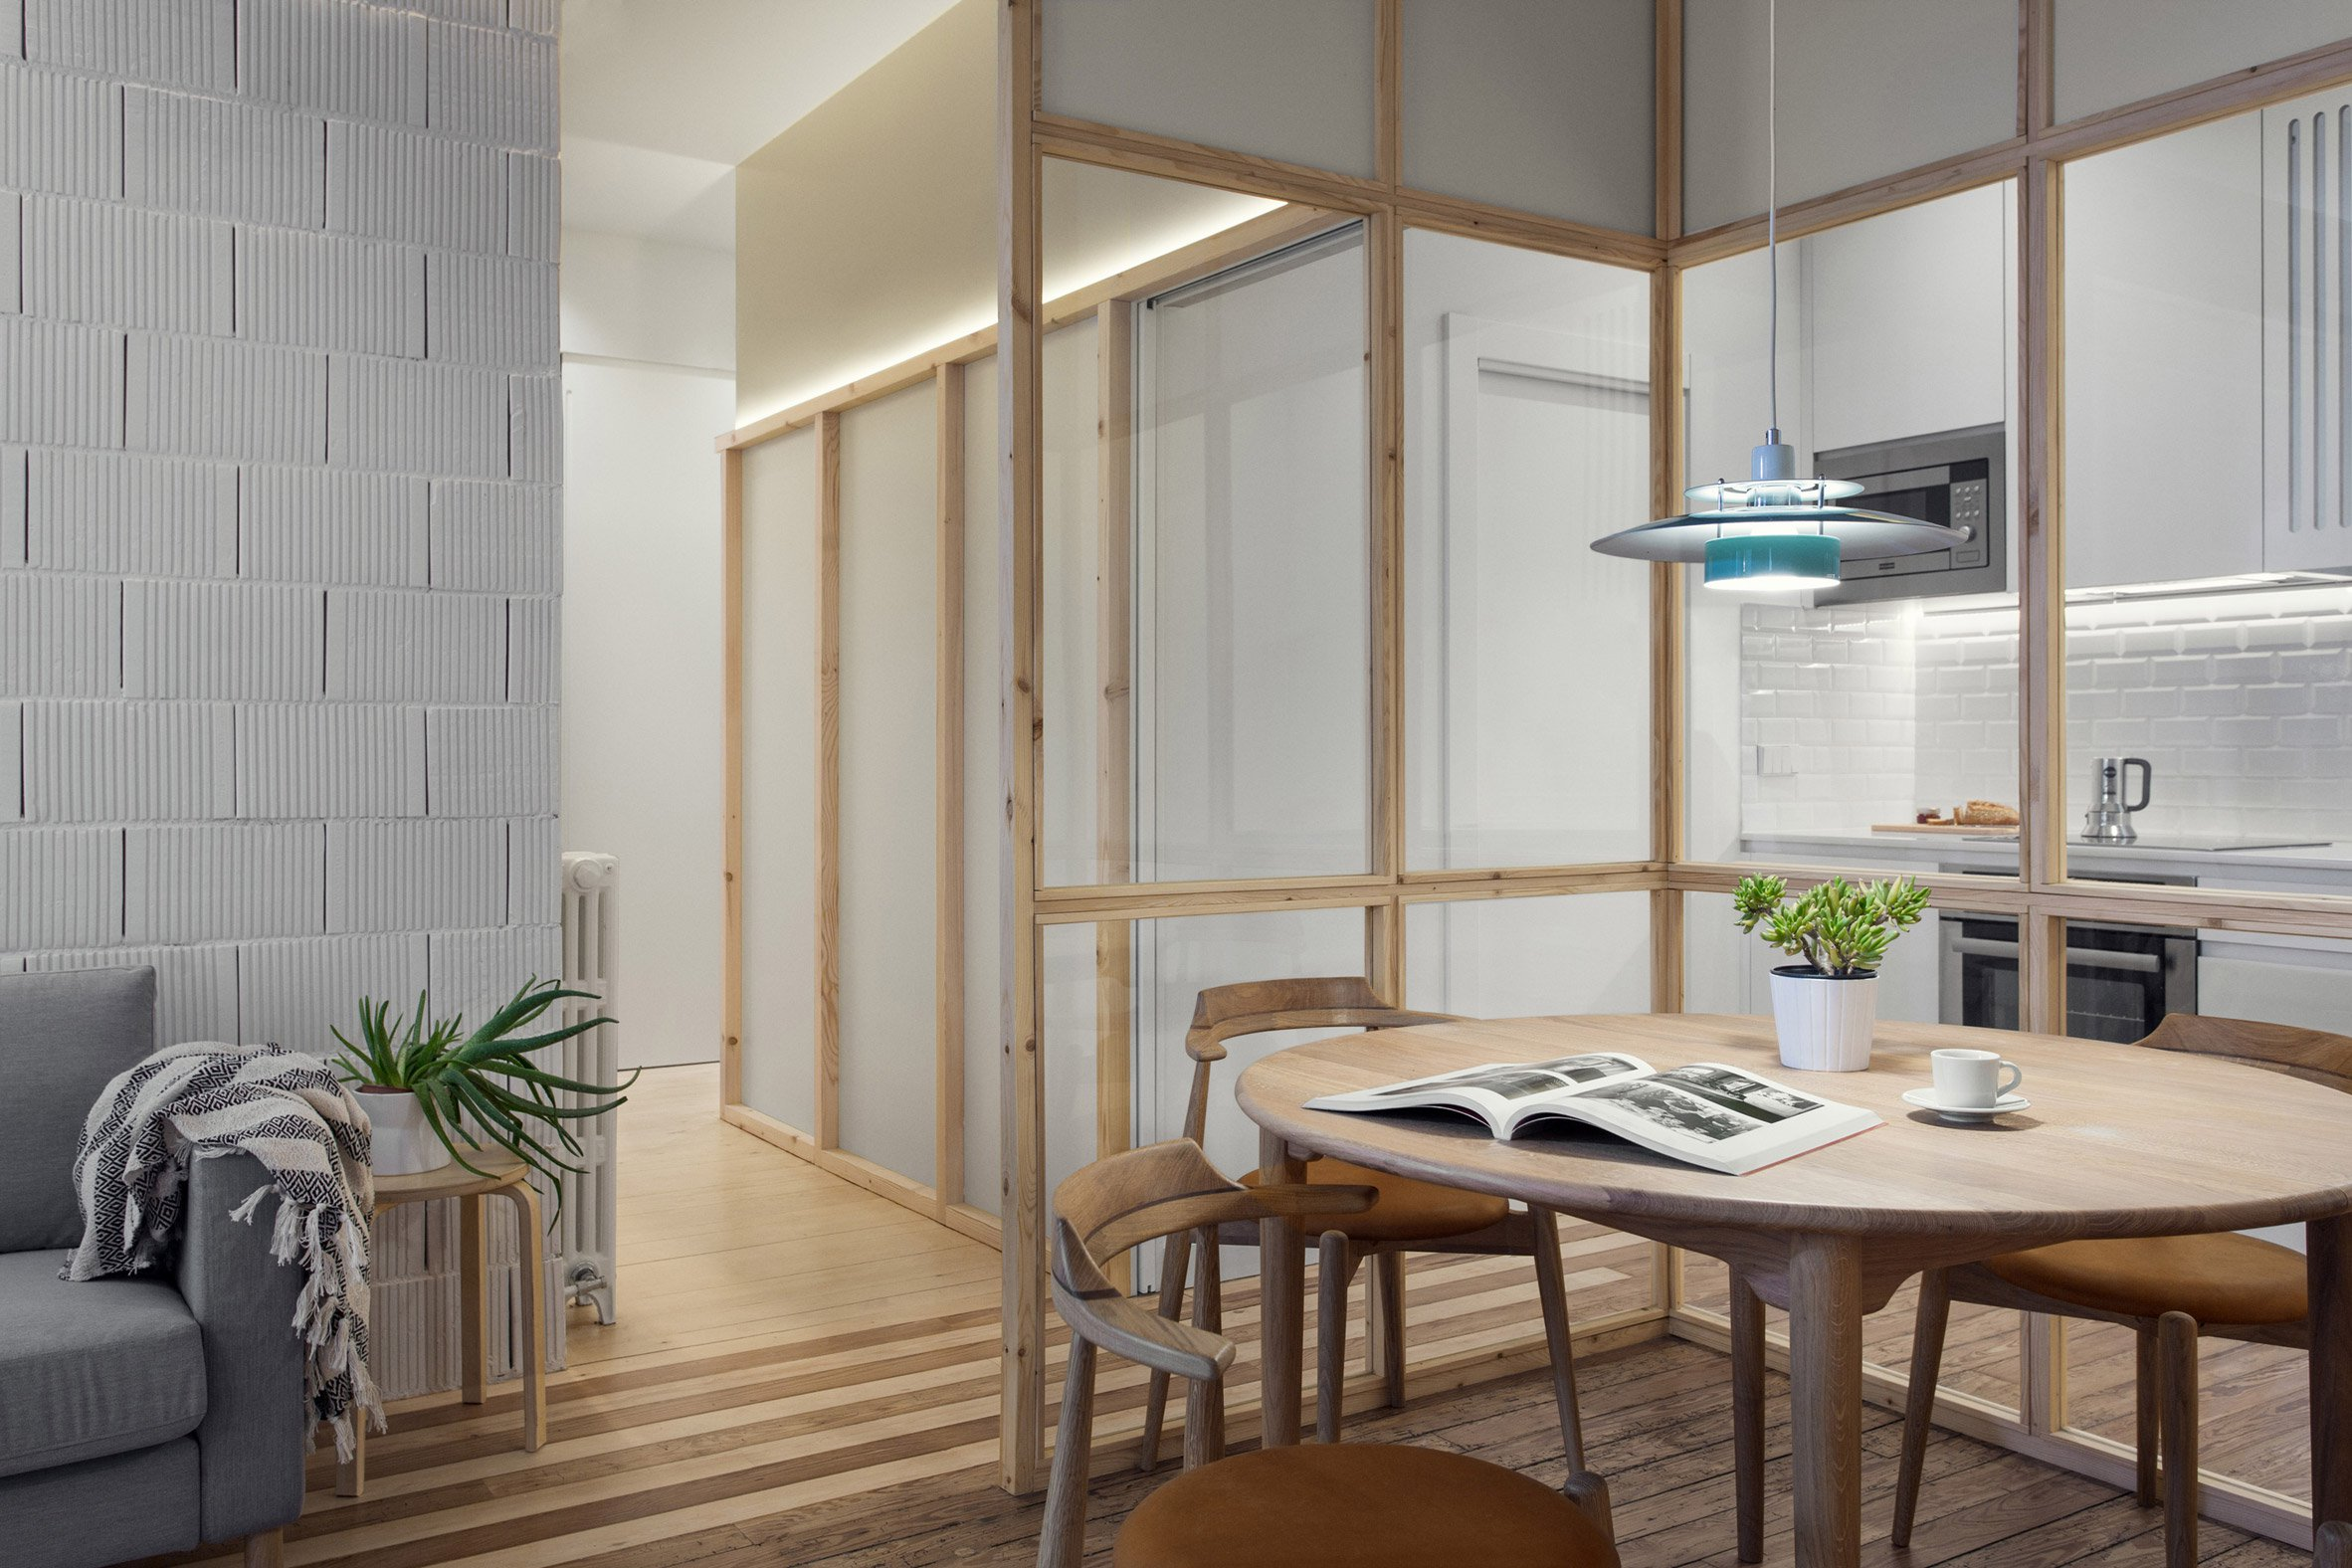 spanish apartment renovation breaks space up into zones - curbed